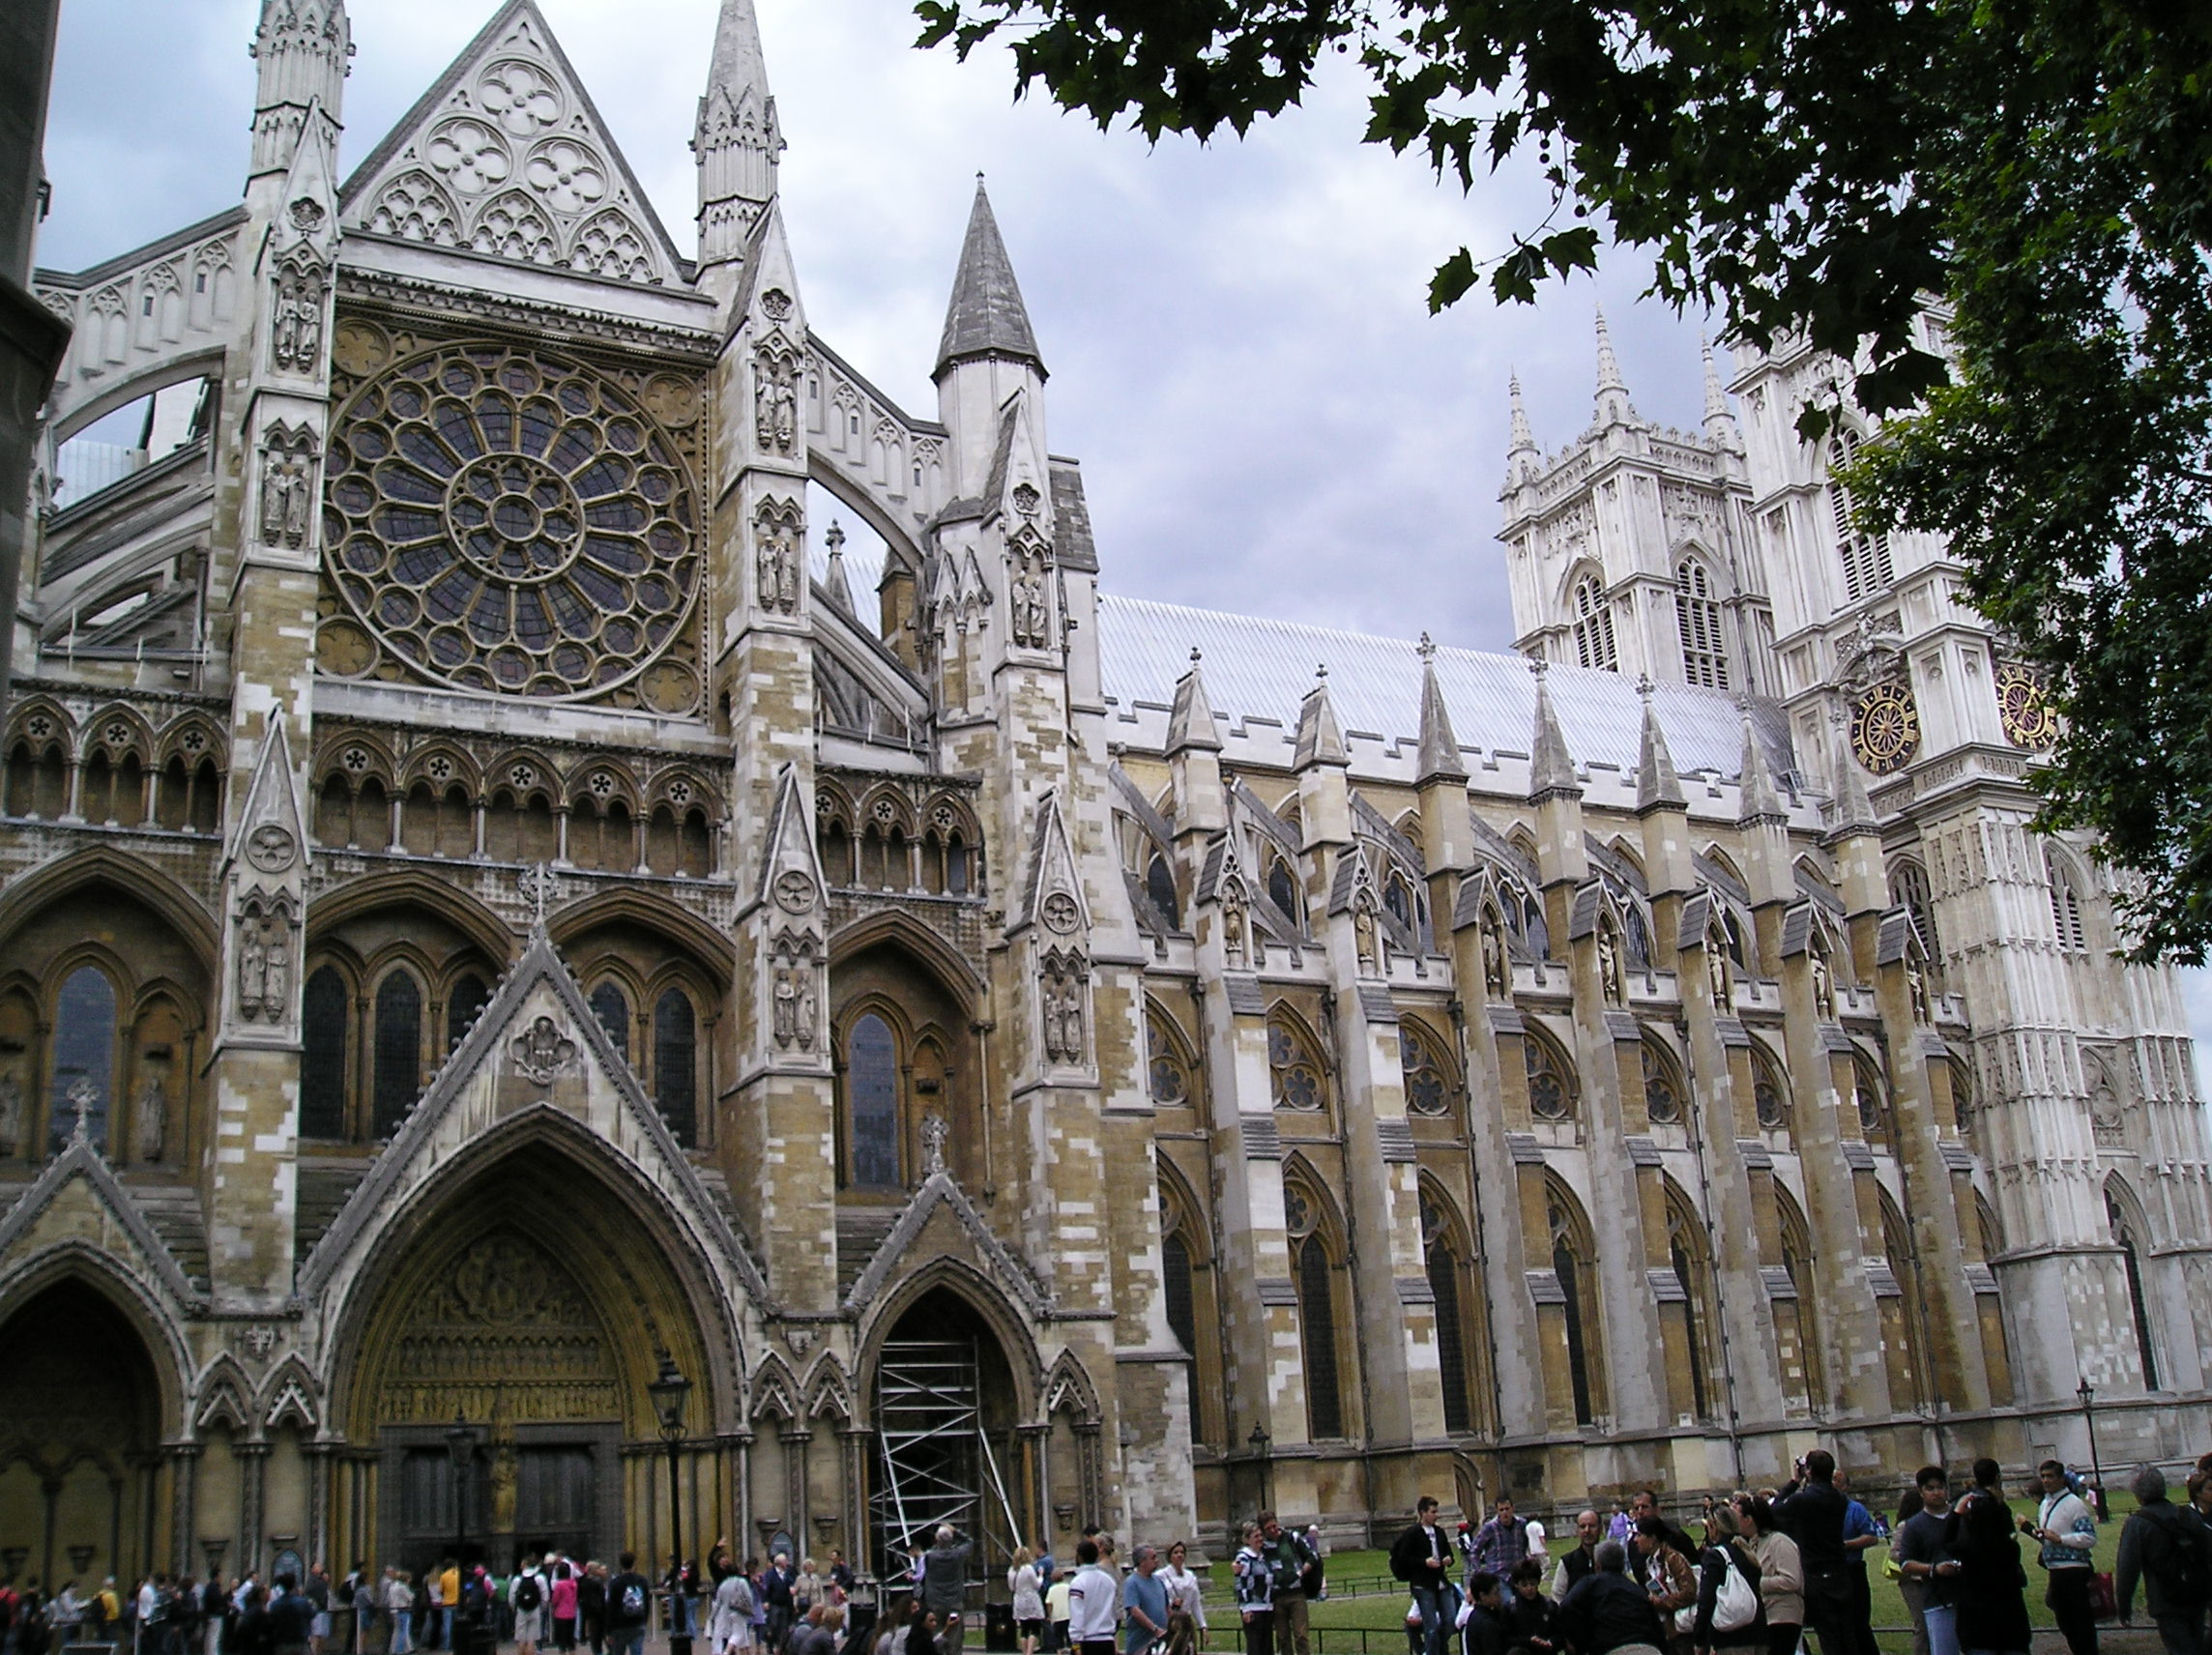 Westminster Abbey parliament square